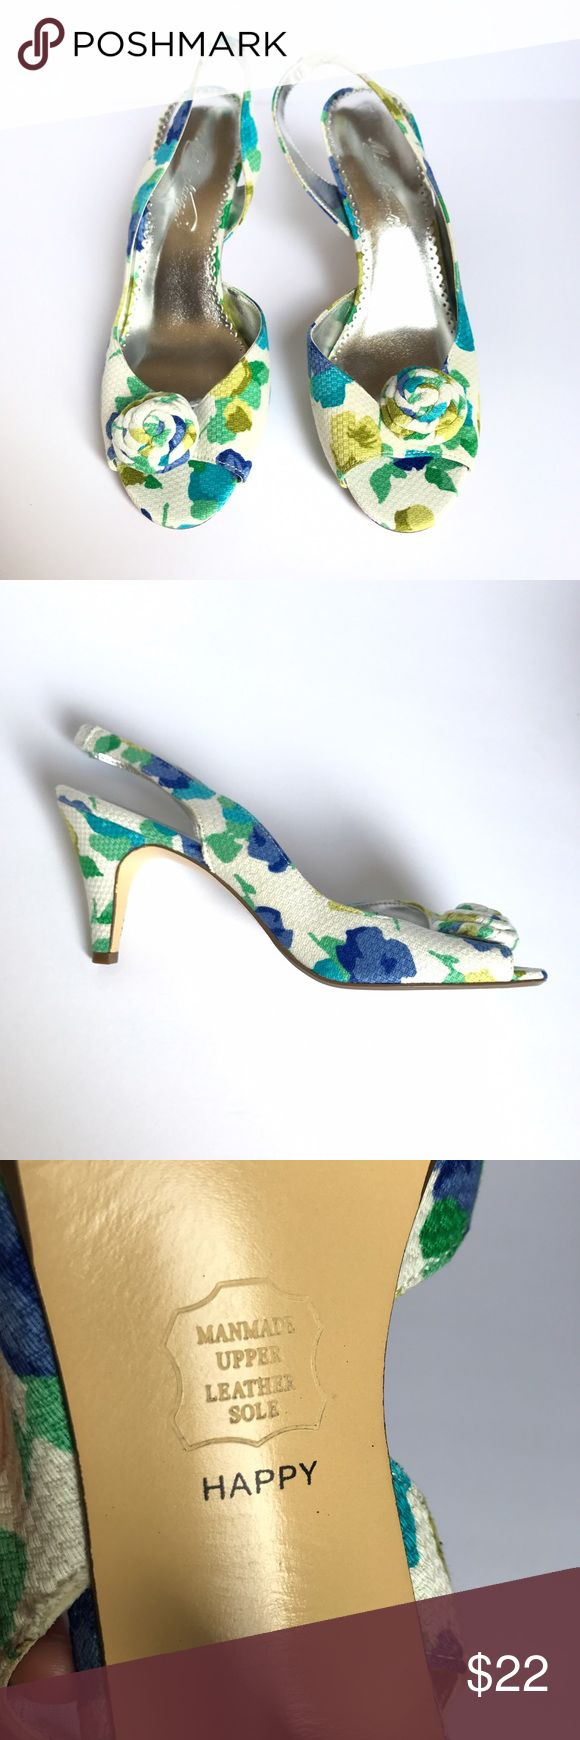 • Michaelangelo • colorful floral heels White heeled sandals with green and blue watercolor floral pattern. Flower detail on uppers. Leather sole. Bright and vibrant shoes for spring or summer! Pretty slingback heels to wear to someone's wedding or to brunch! Michaelangelo Shoes Heels